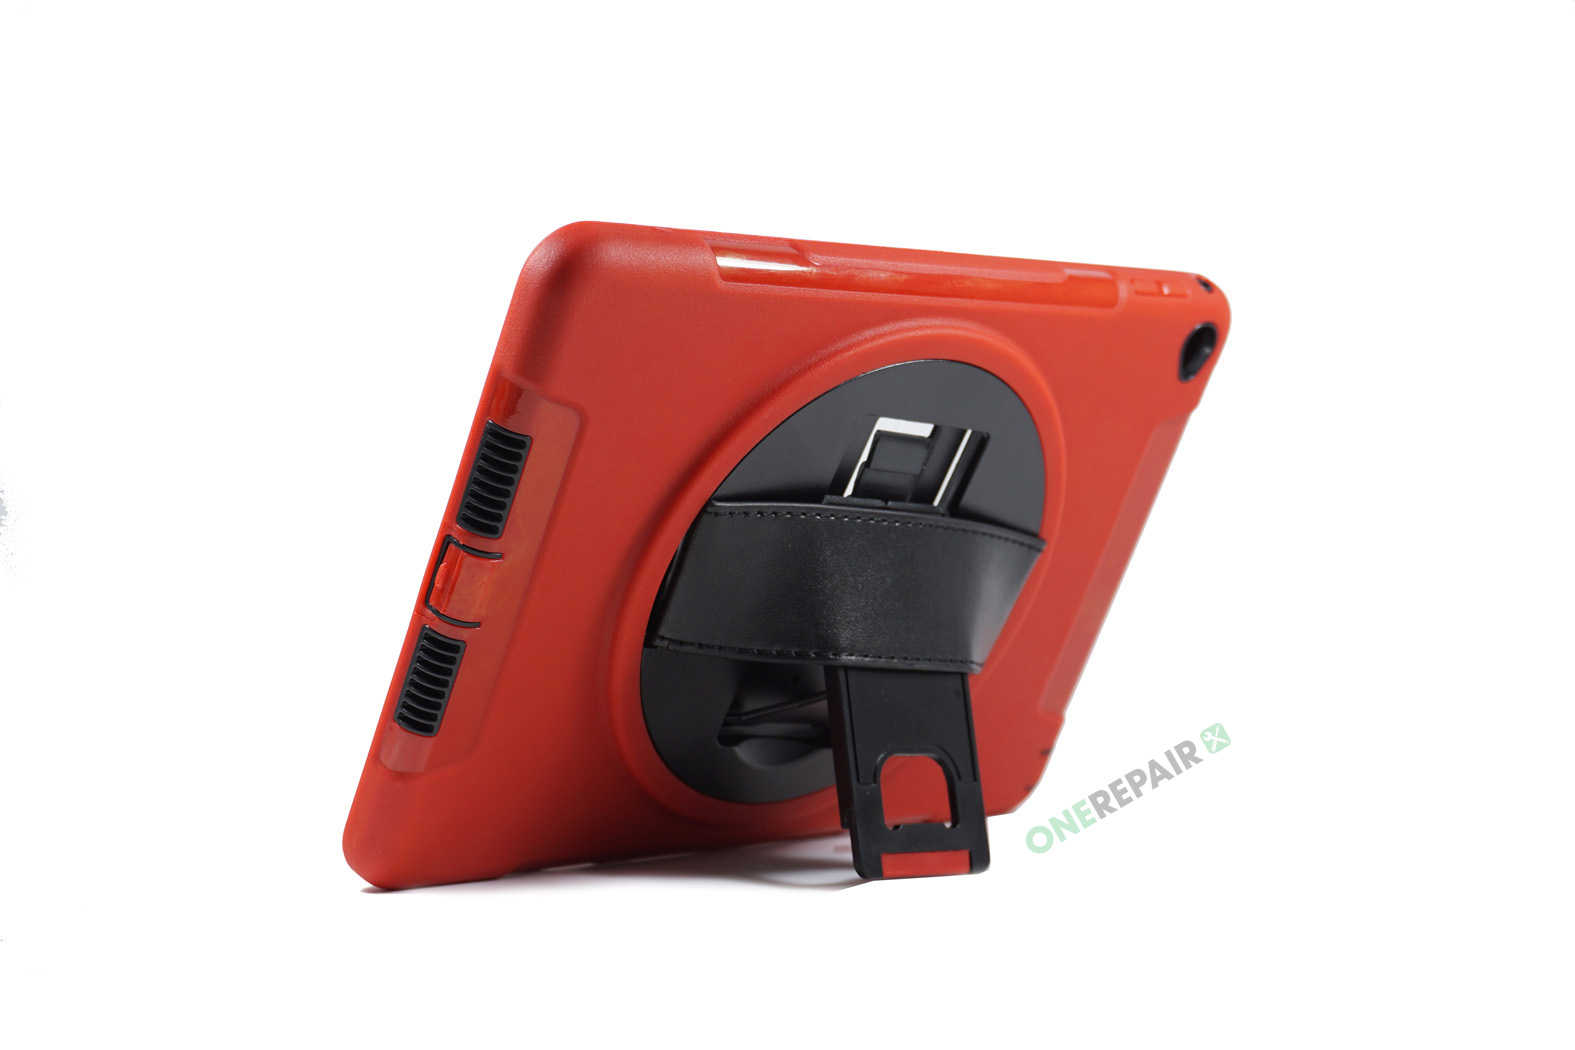 351068_351841_iPad_Air2_2_A1566_A1567_3-in-1_Thin_Boernecover_Børne_Hardcase_Cover_Roed_OneRepair_00005